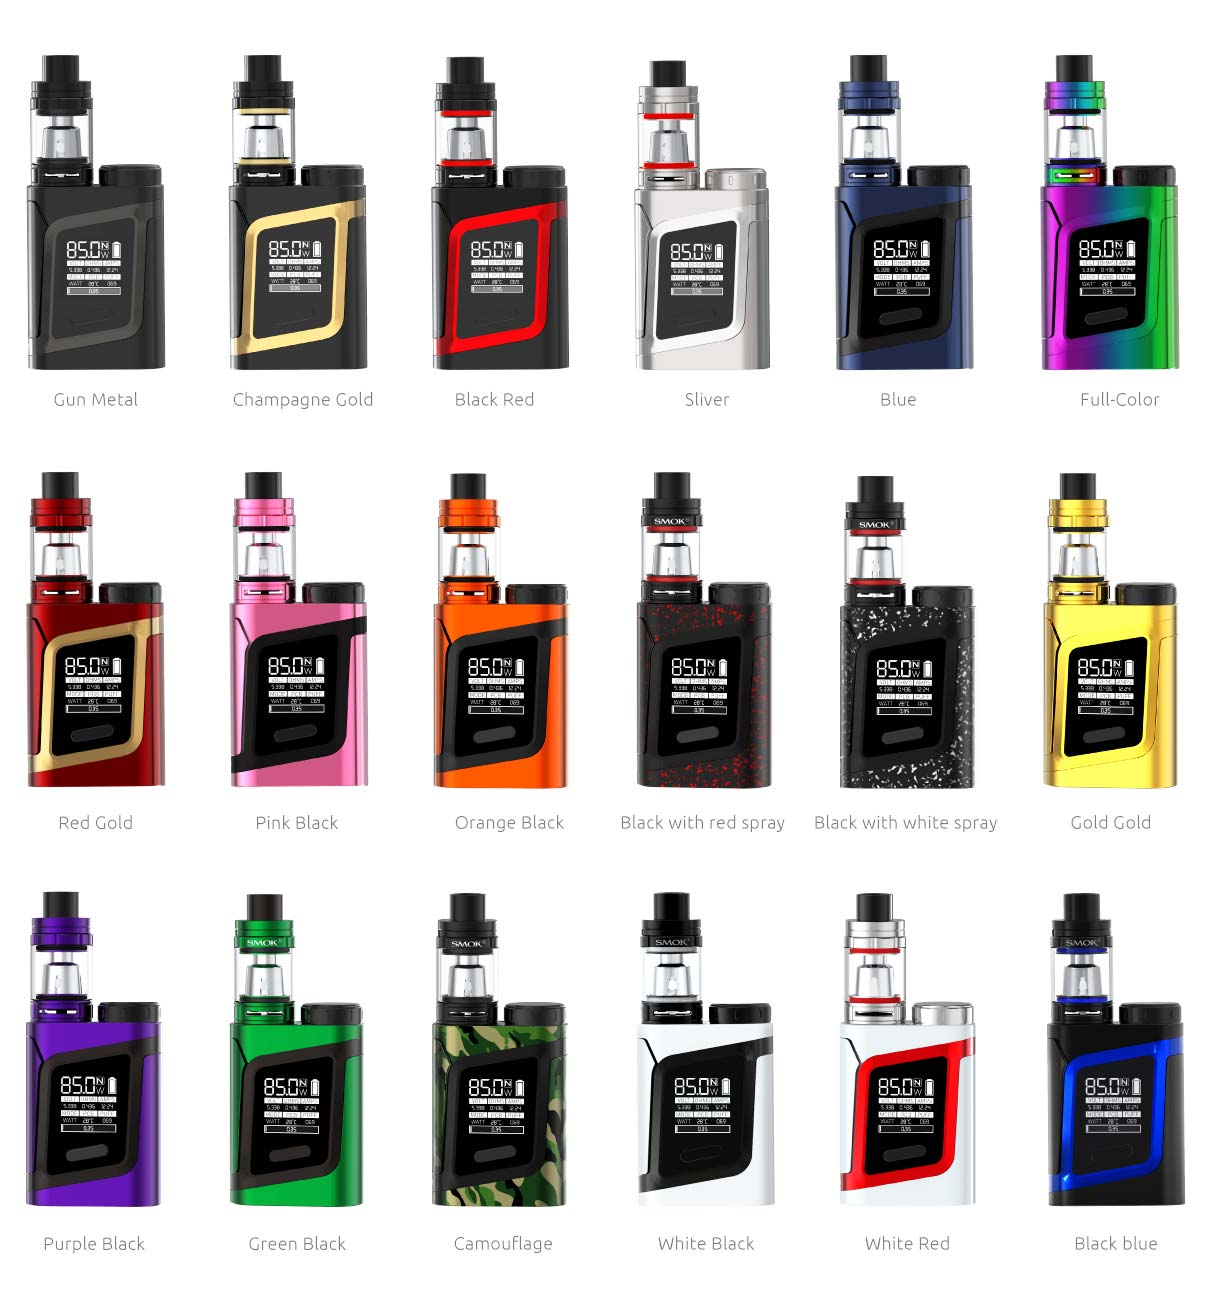 Smok AL85 Alien Baby includes